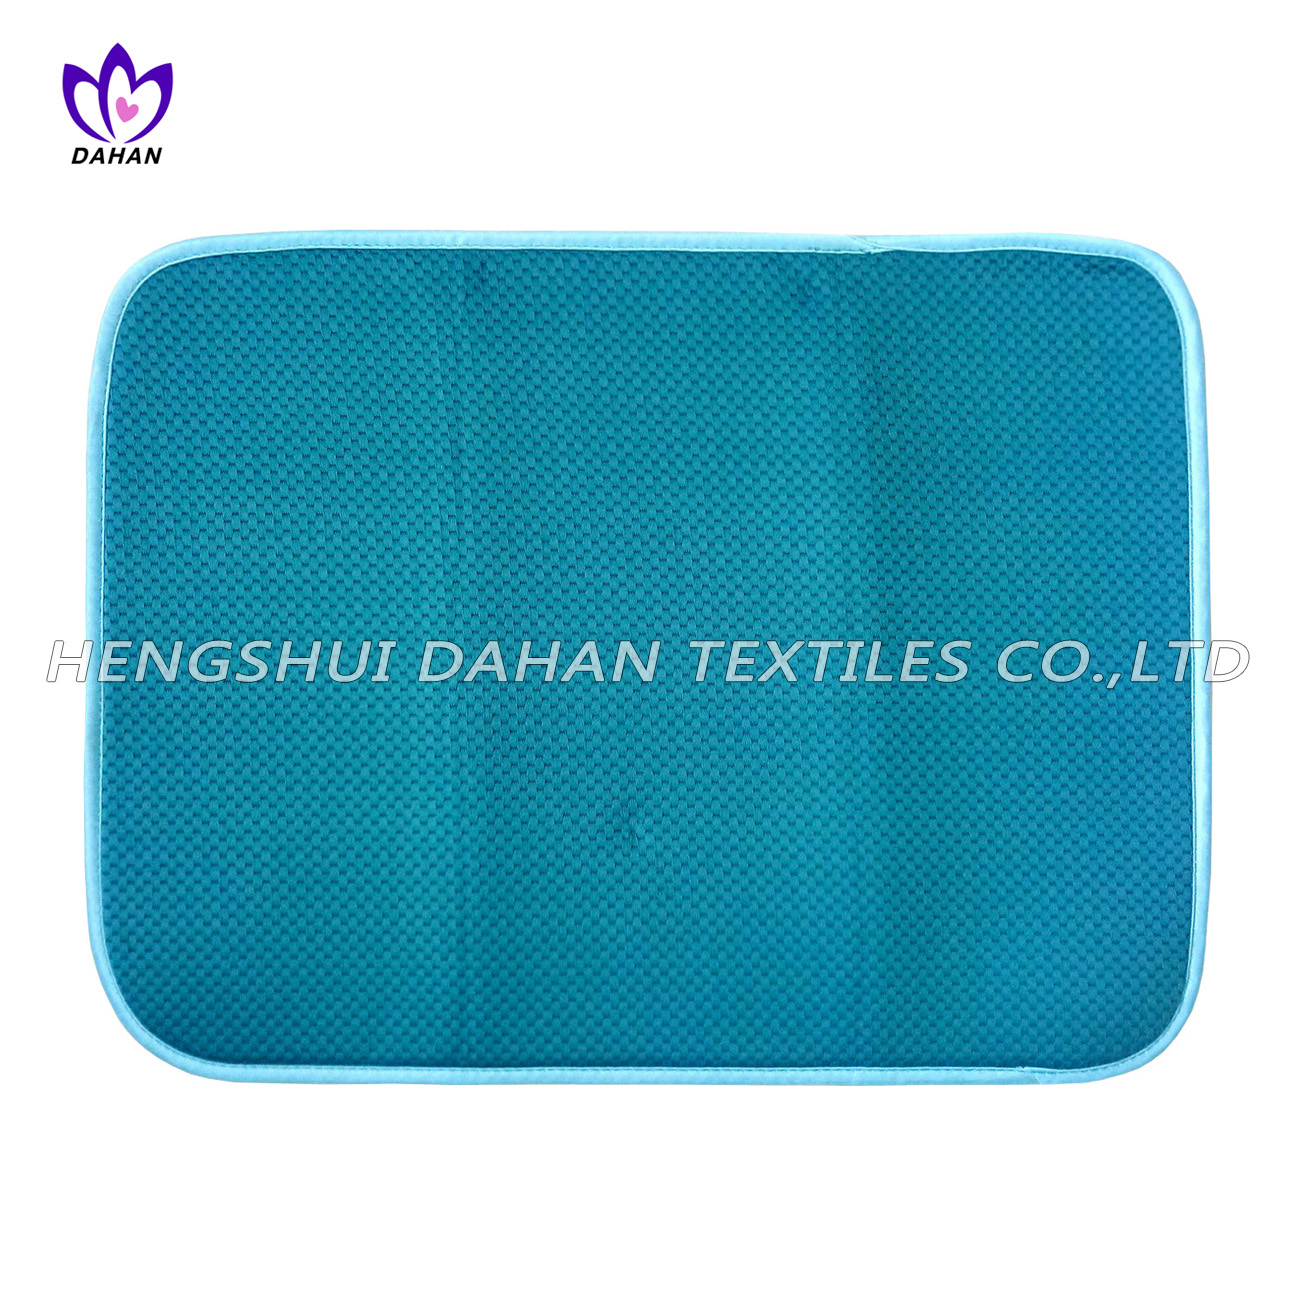 17214 100%polyester plain colour dish drying mat.